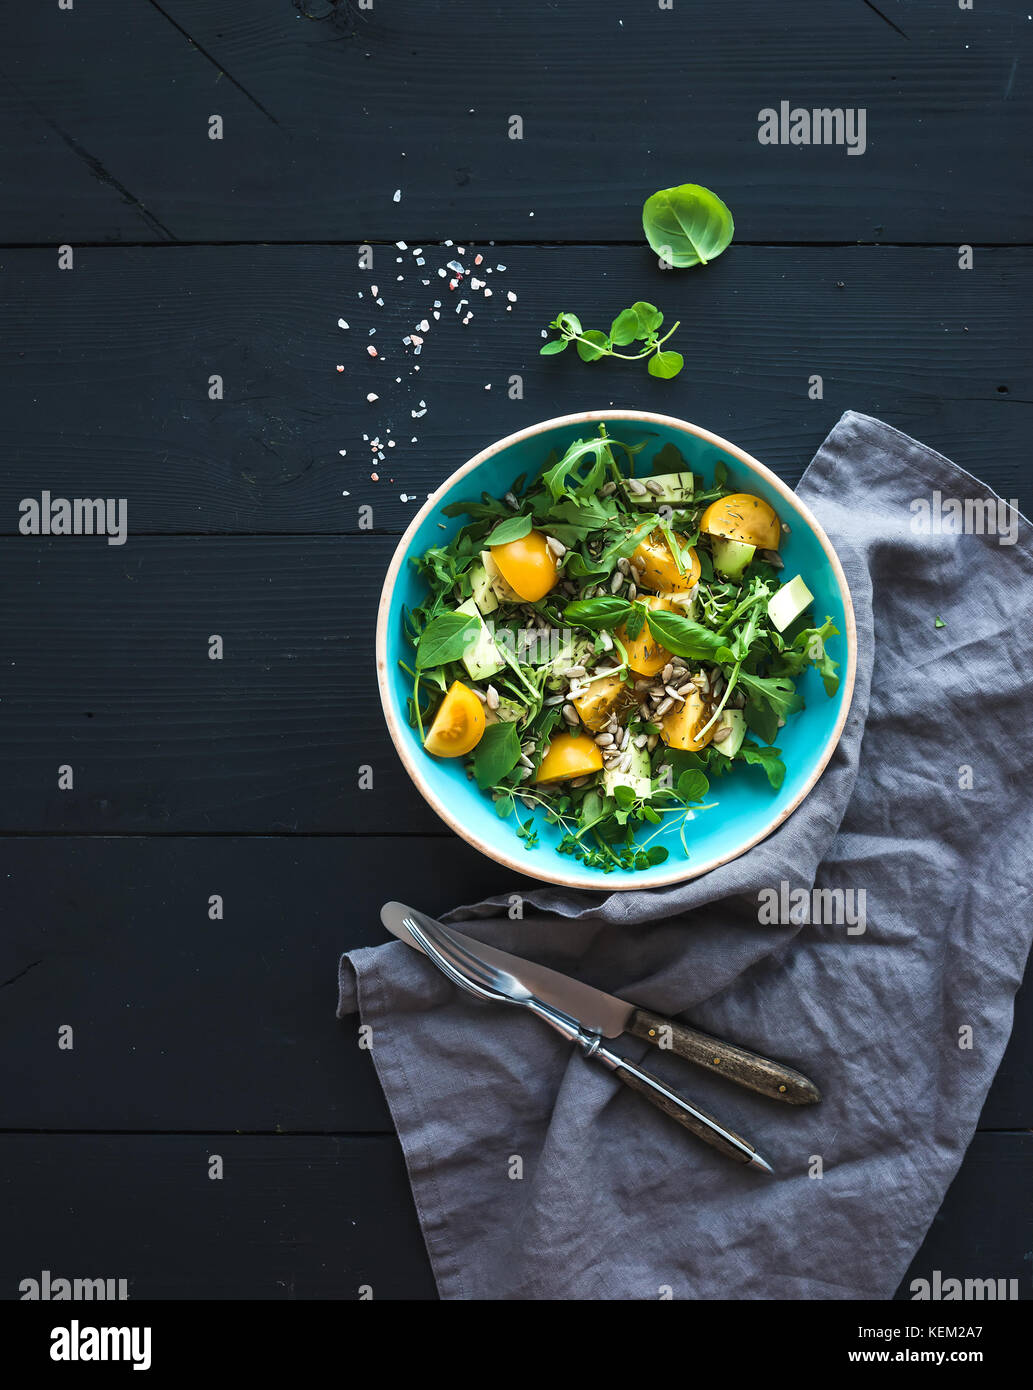 Bowl of green salad with avocado, arugula, cherry tomatoes and sunflower seeds, grilled bred slices, fresh herbs - Stock Image